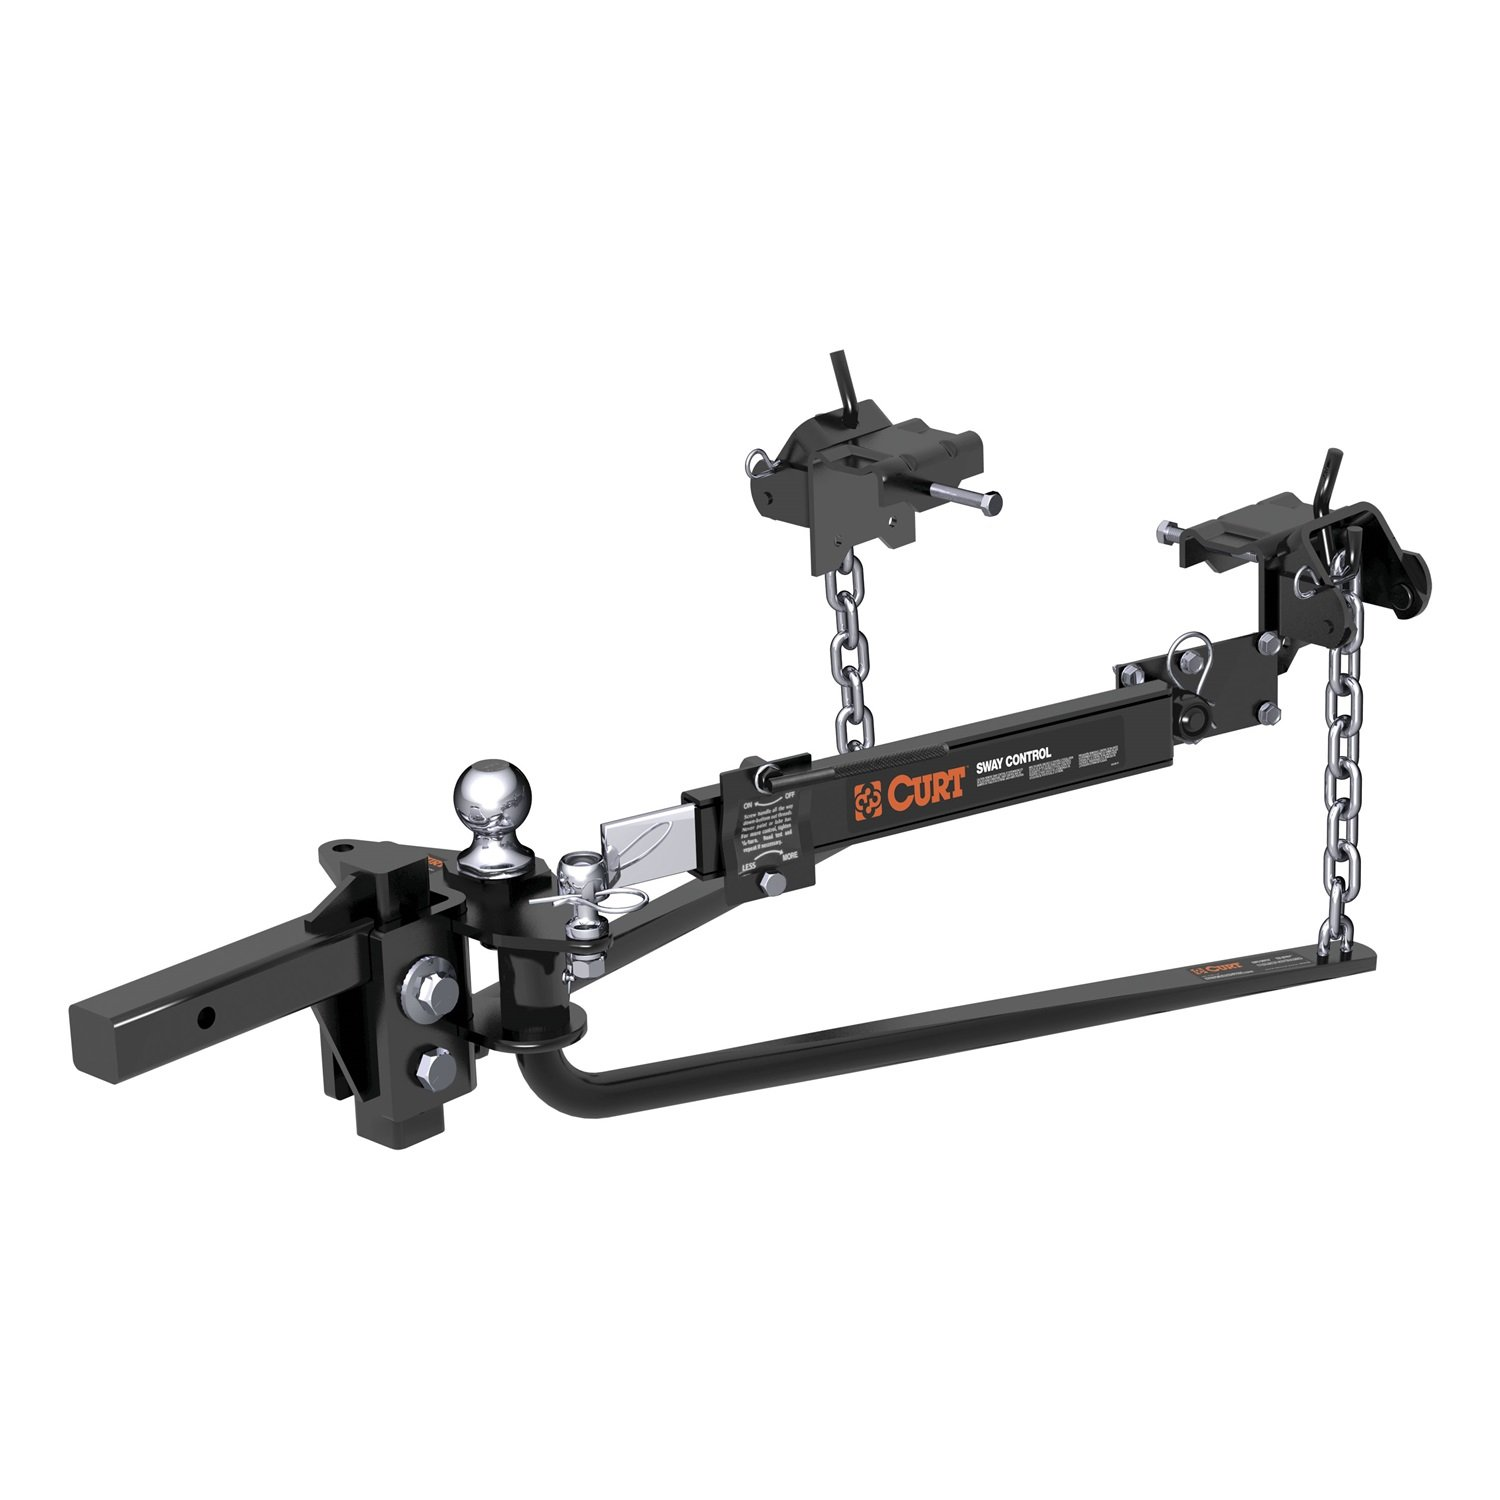 CURT 17063 MV Black Round Bar Weight Distribution Hitch with Sway Control Kit (14,000 lbs. GTW, 2'' Shank, 2-5/16'' Ball) by CURT (Image #9)